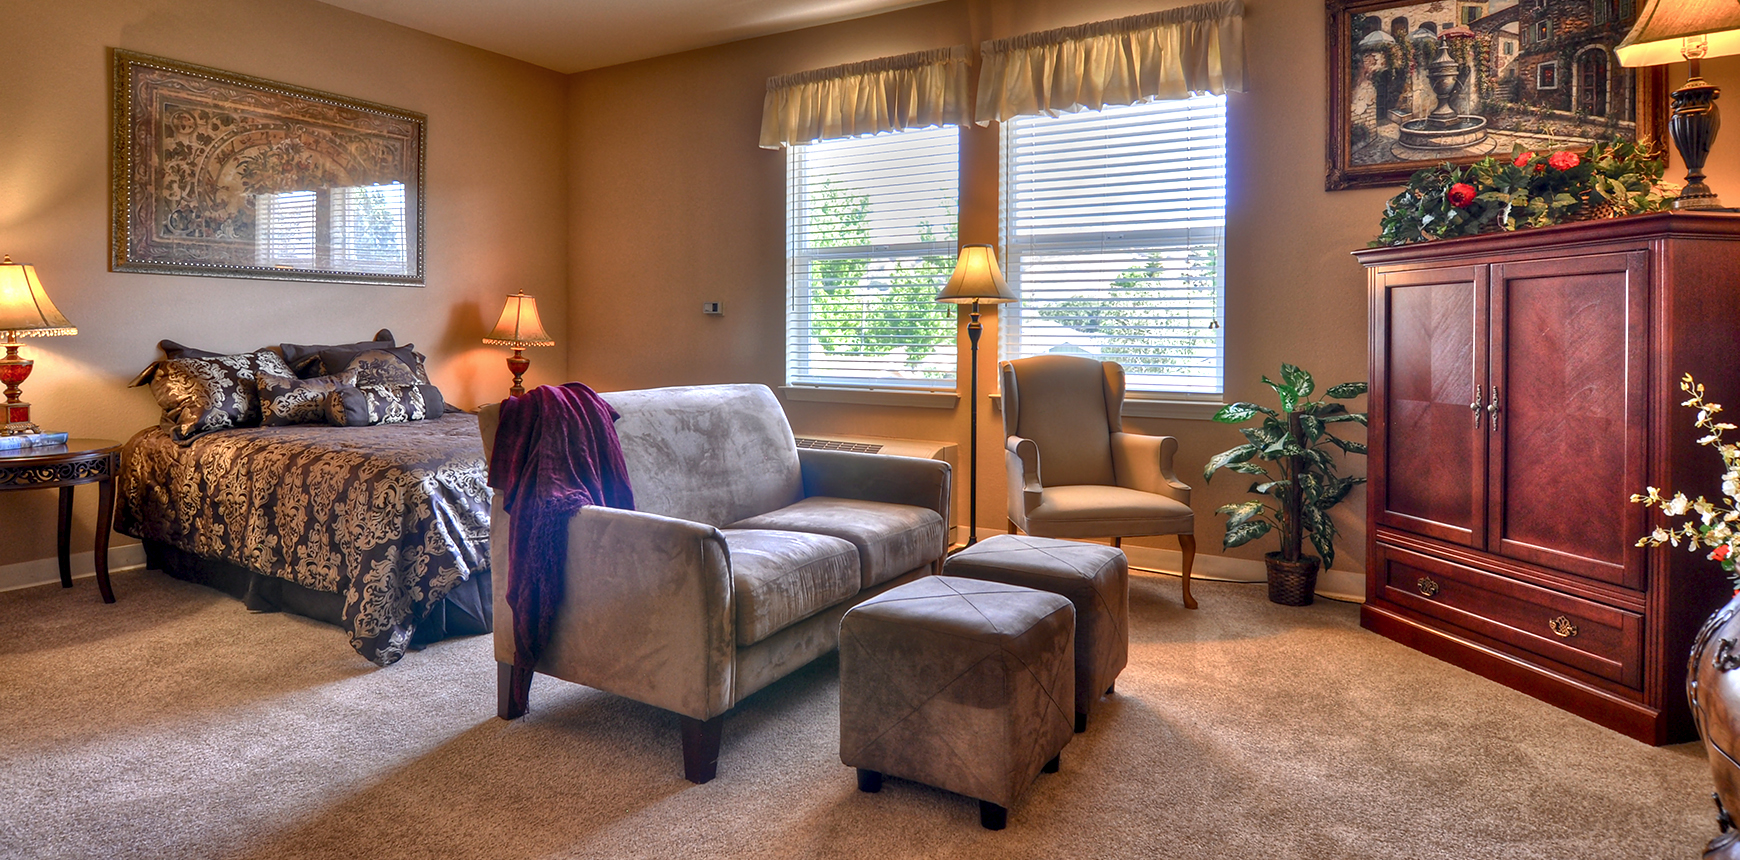 valley village senior dating site Luxury senior living in the residence at valley farm is a brand new community classes, traveling, and online dating are all wonderful.